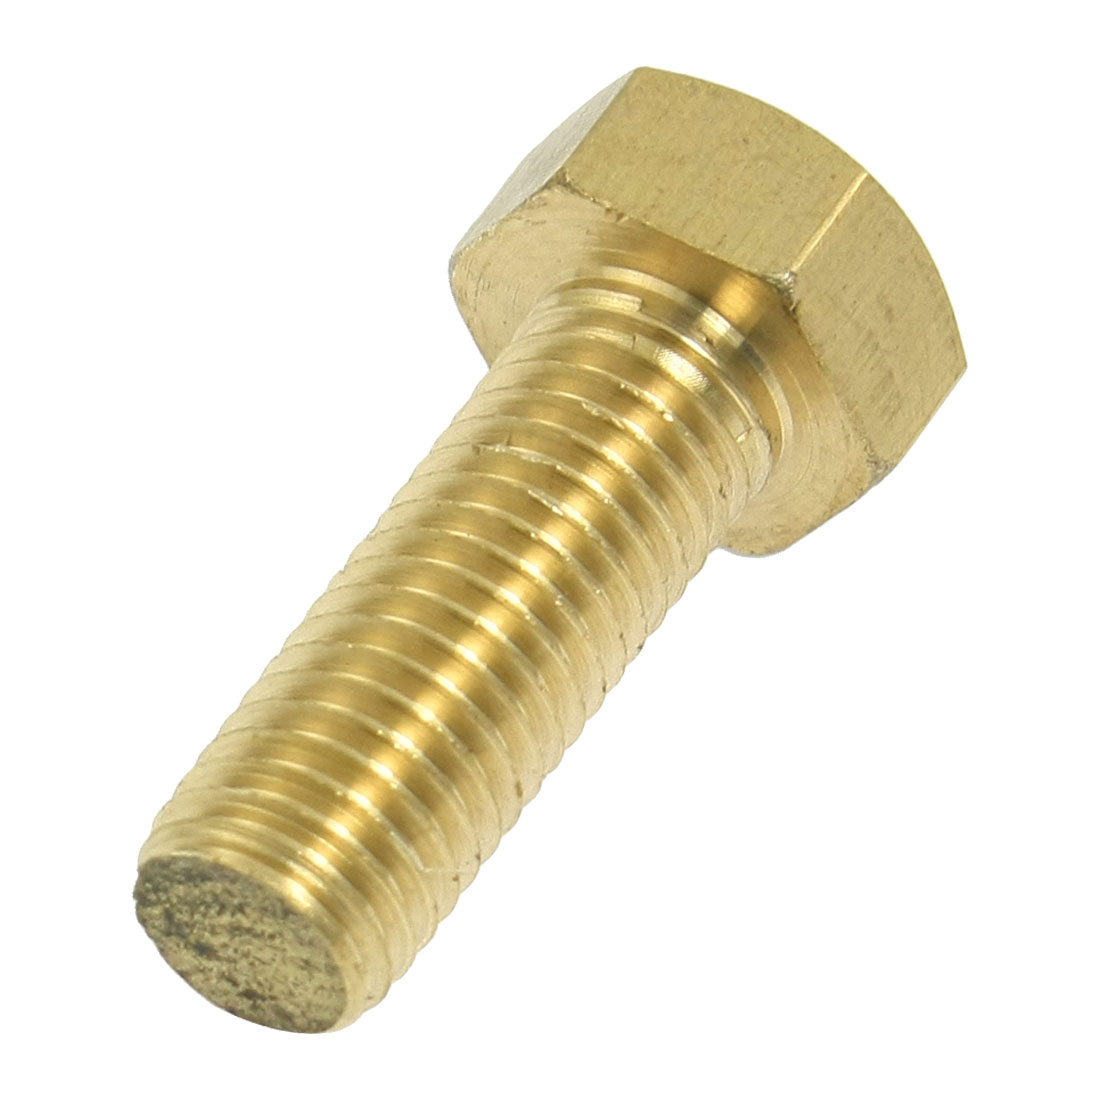 24mm Hex Cap 16mm x 40mm Thread Bolts Flat Tip Brass Screws